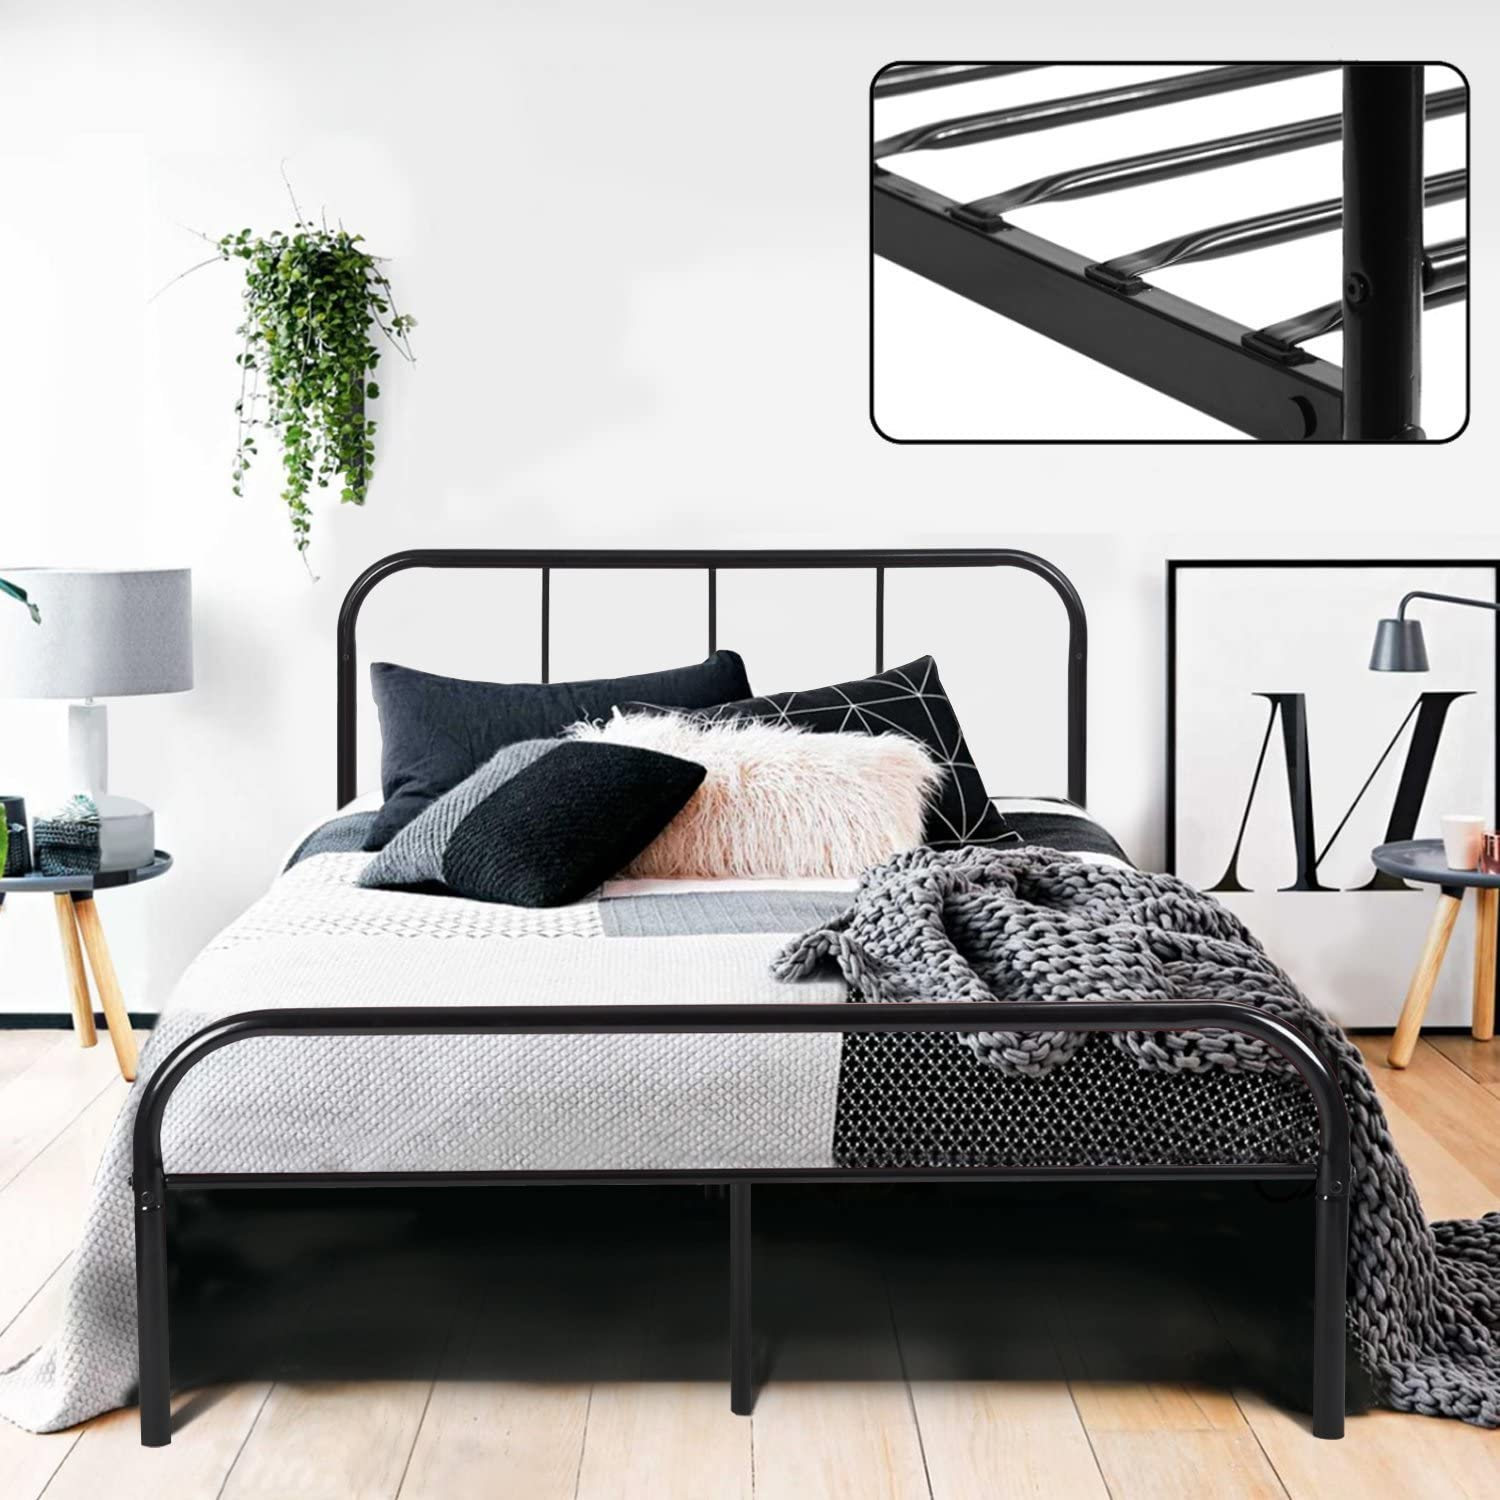 Coavas Double Bed Frame 4ft 6 Solid Bed Frame with 2 Headboard Metal Bed Frame Black fit 141  190 Matress For Adults, Teenagers